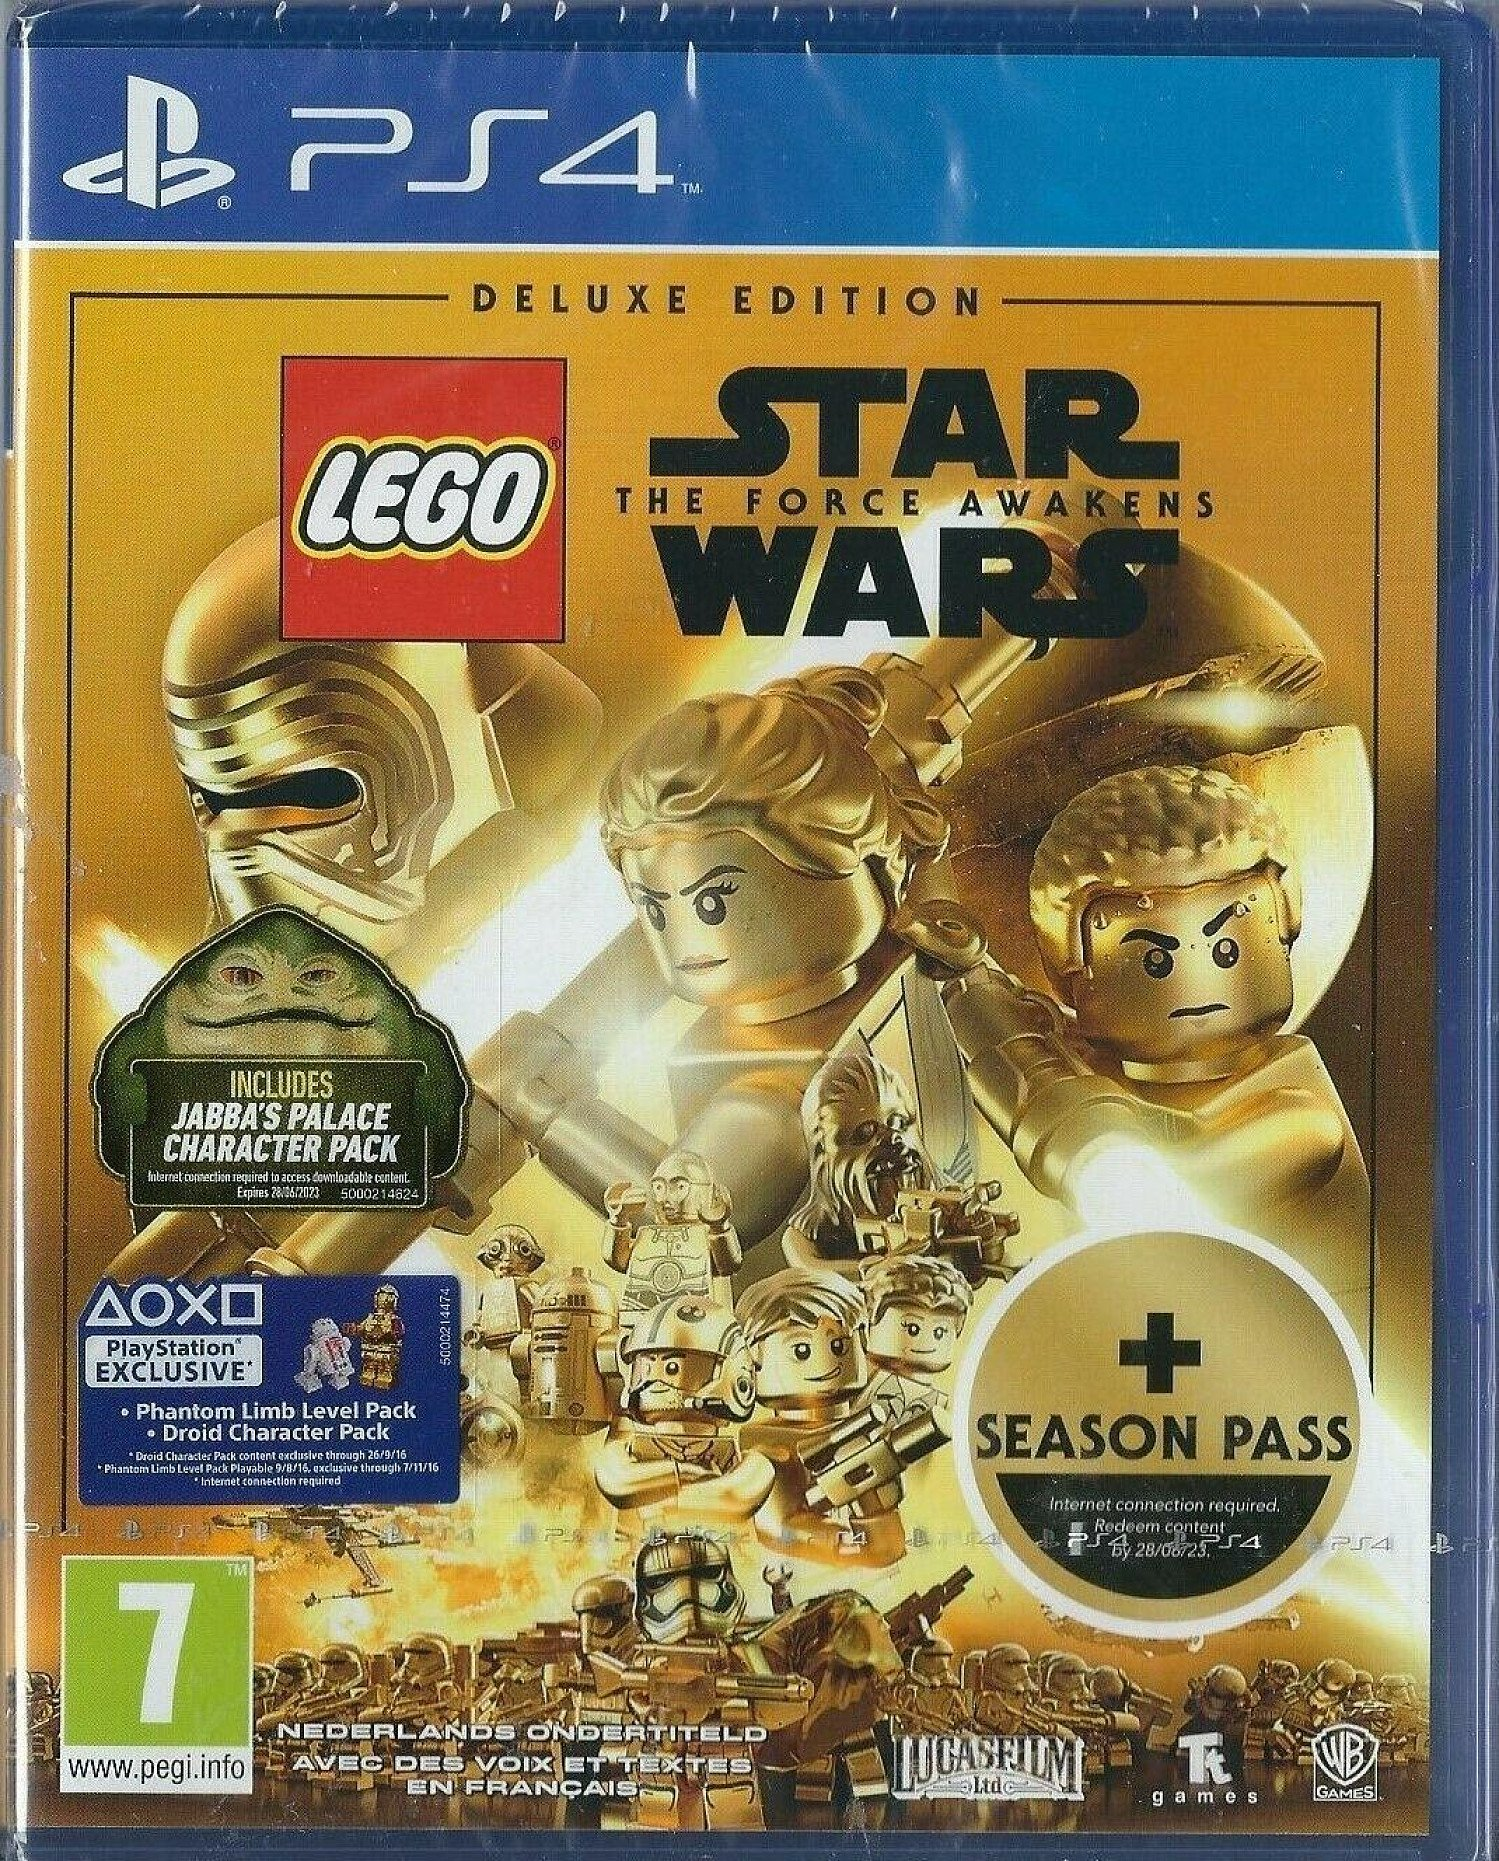 Playstation 4 LEGO Star Wars The Force Awakens Deluxe Edition (PS4) (IMPORT) NEW FREE UK SHIPPING